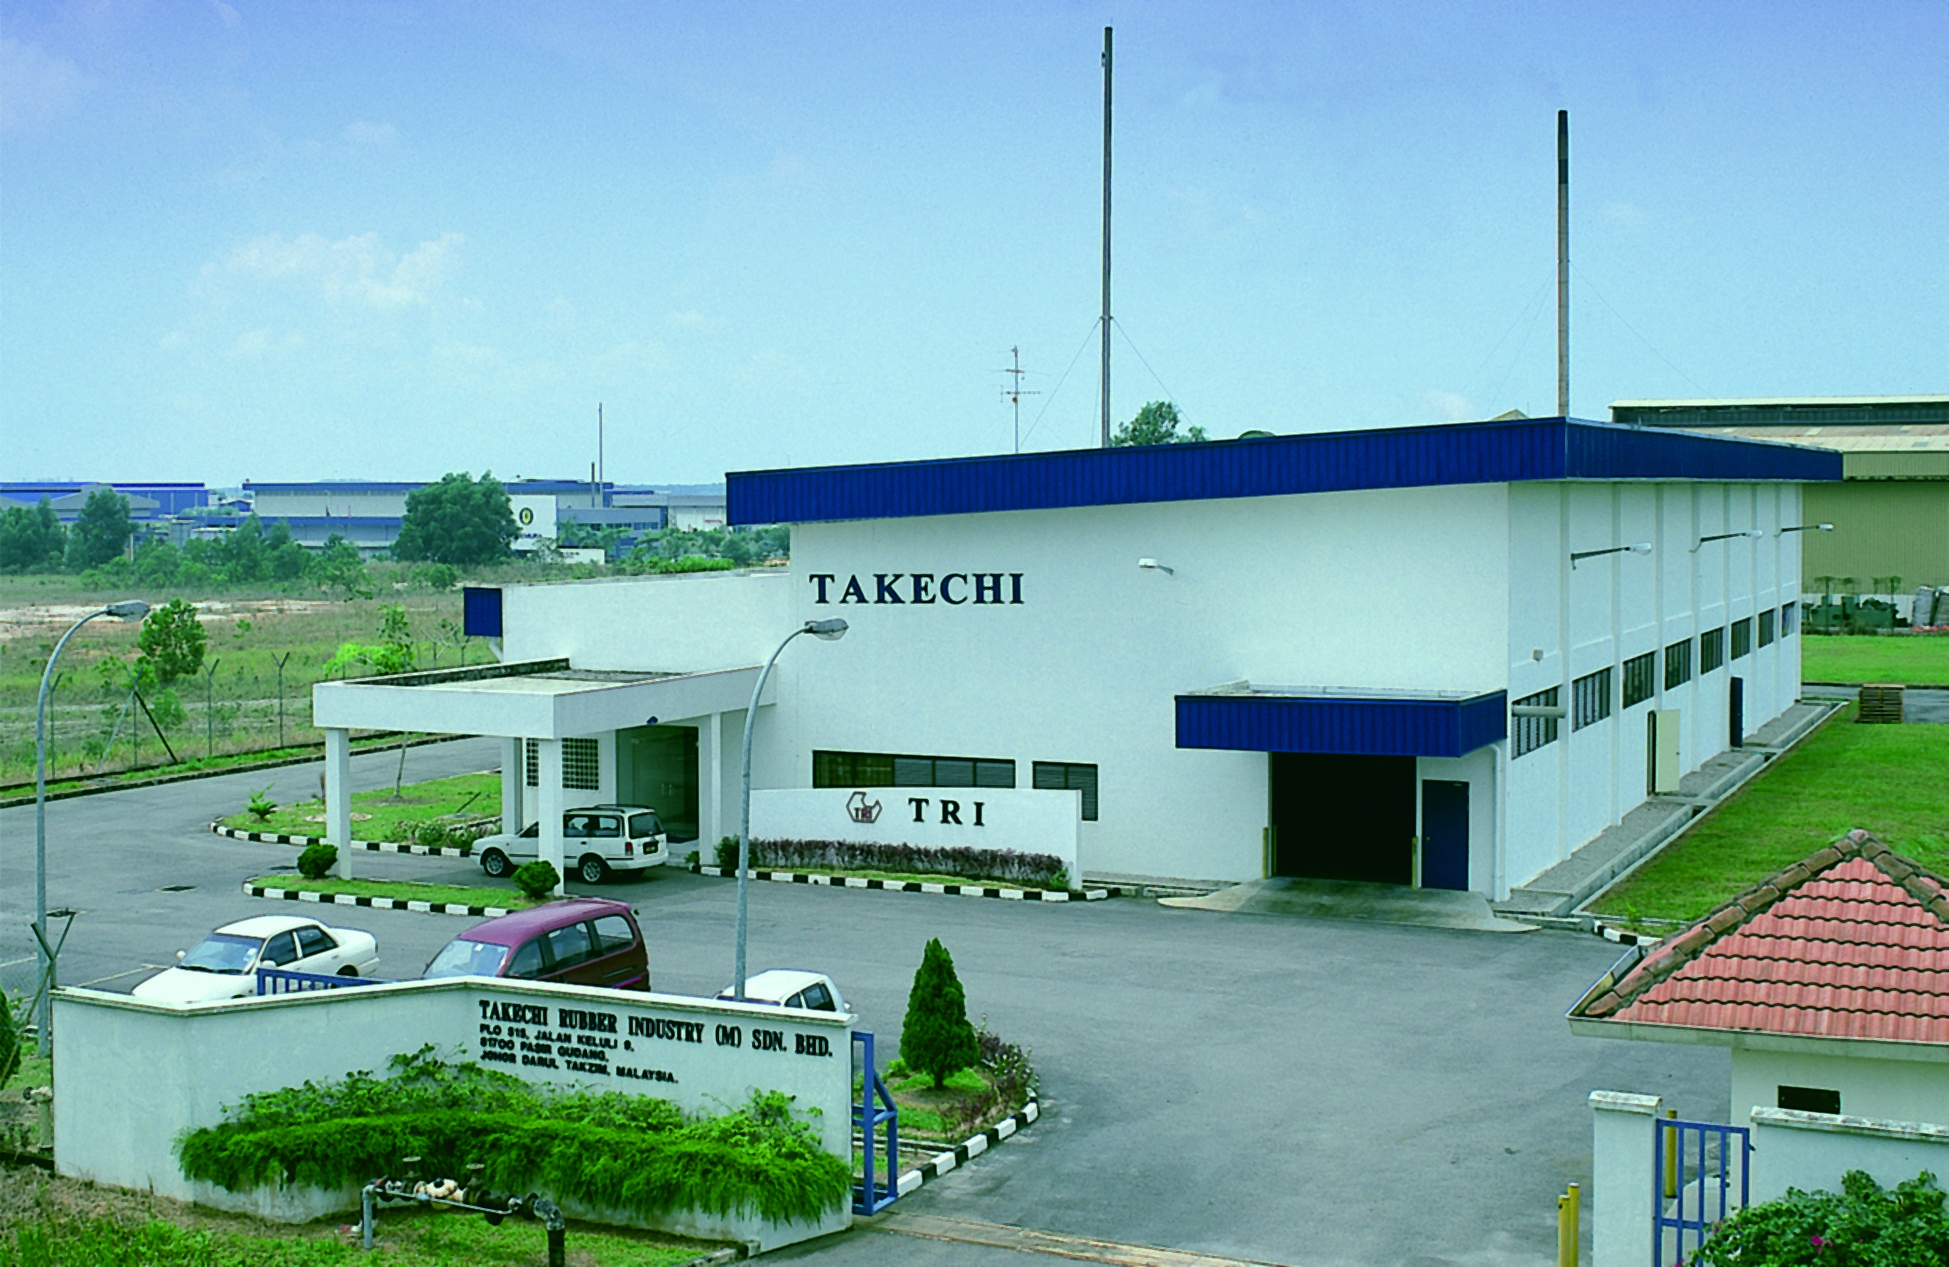 Takechi Rubber Industry Factory (1995)